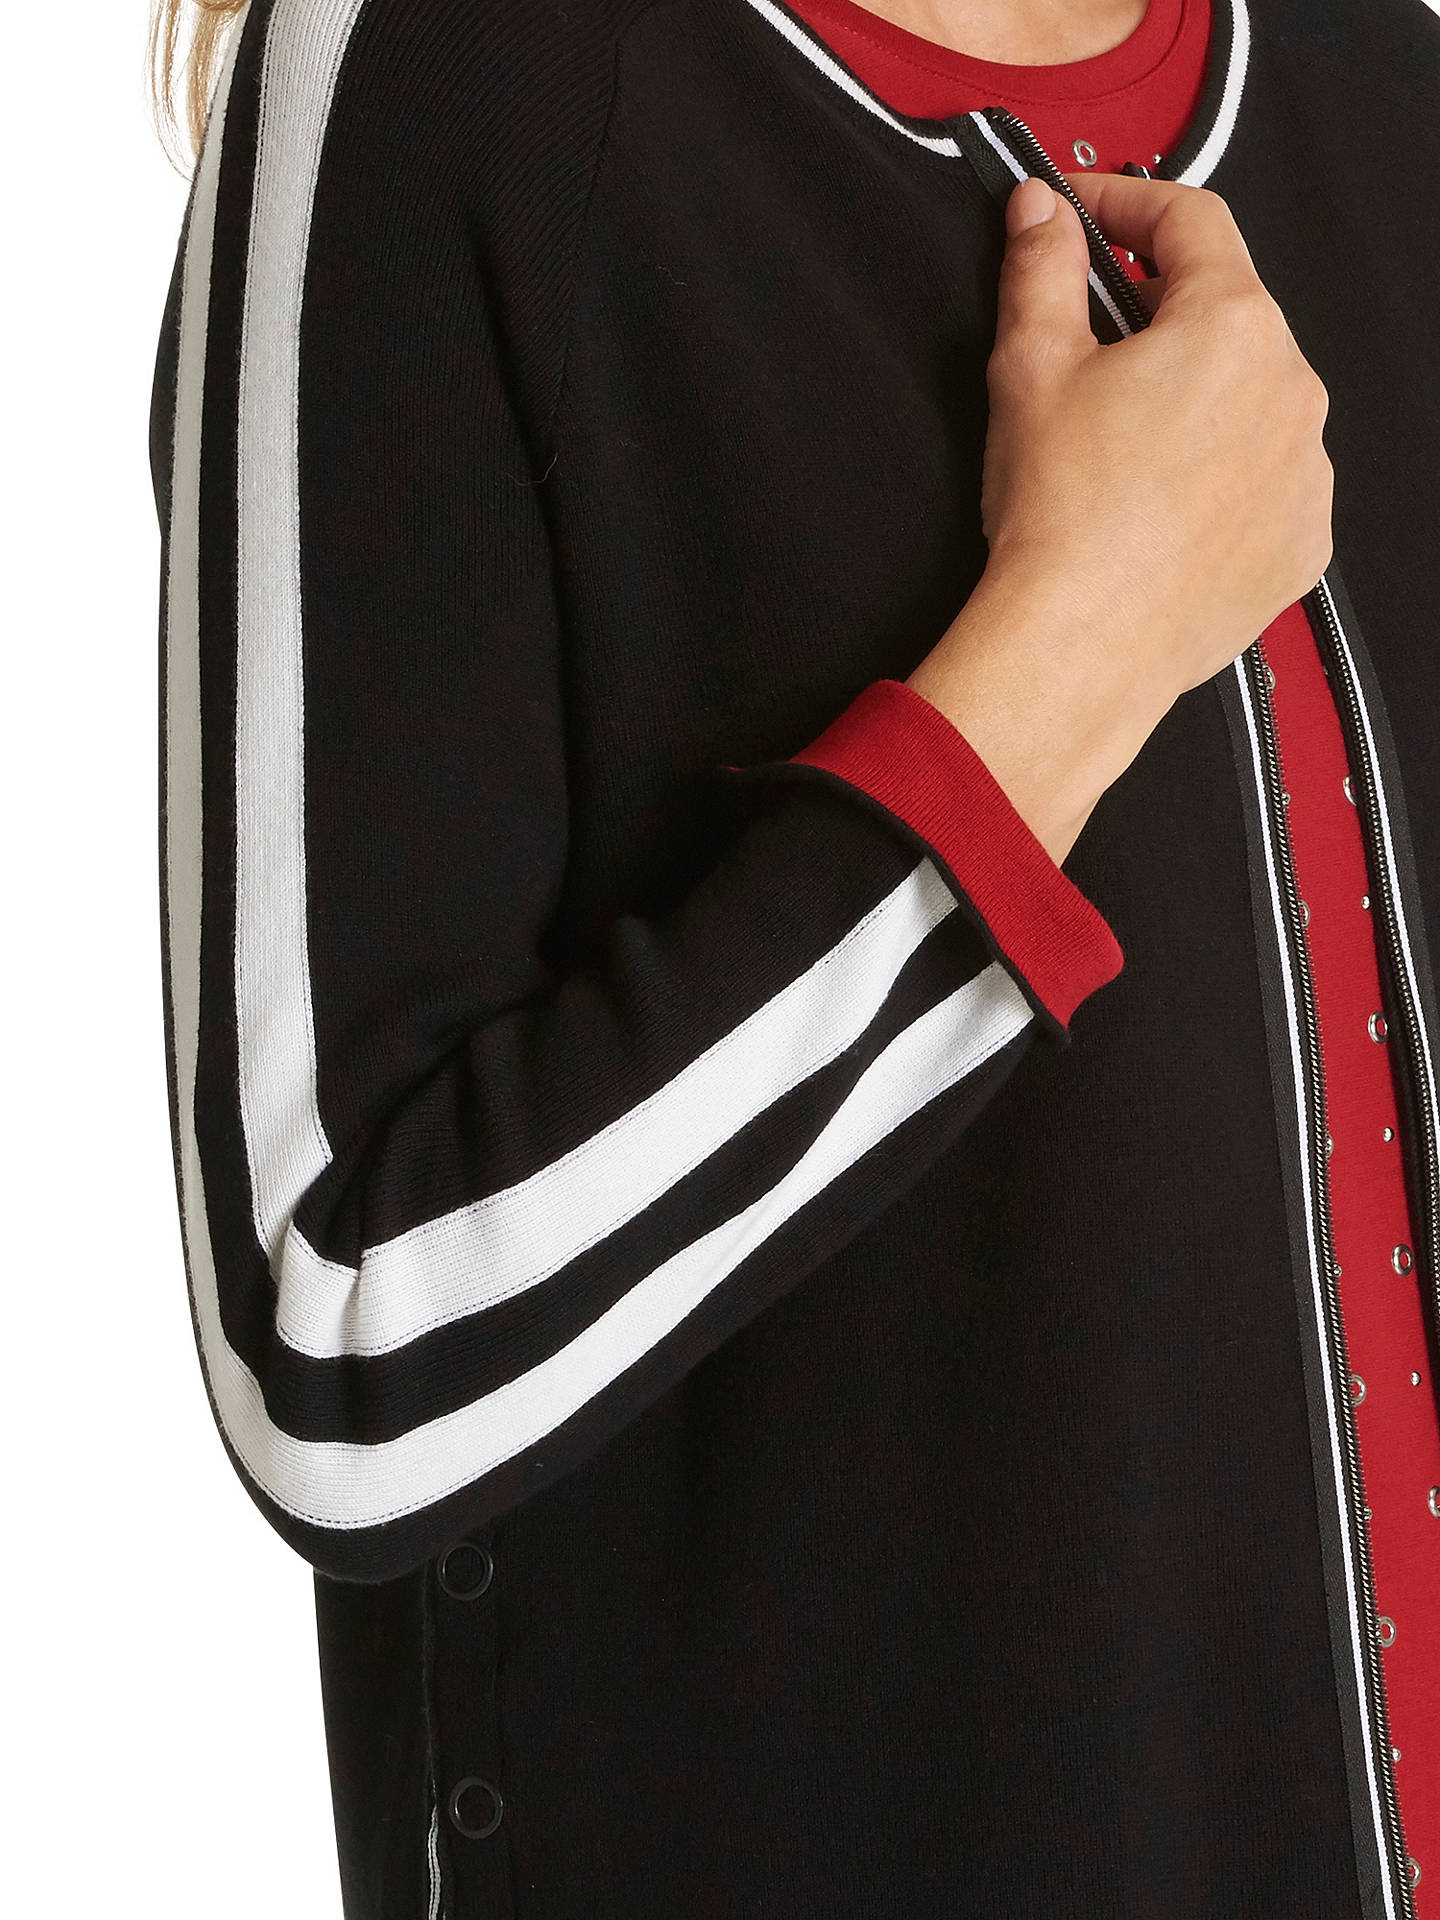 BuyBetty Barclay Stripe Zip Cardigan, Black, 10 Online at johnlewis.com